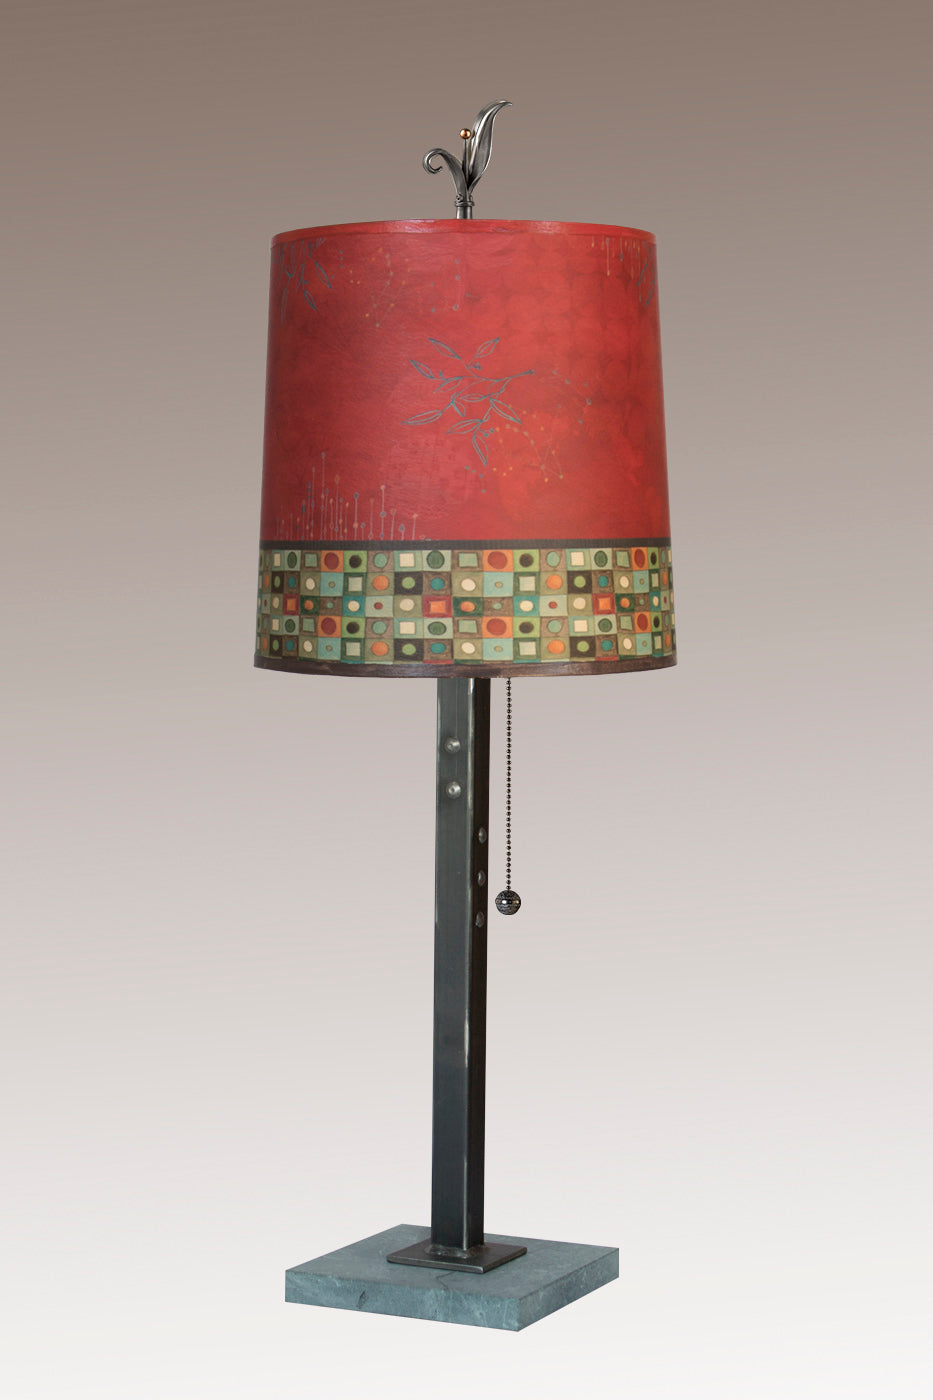 Steel Table Lamp on Marble with Medium Drum Shade in Red Mosaic